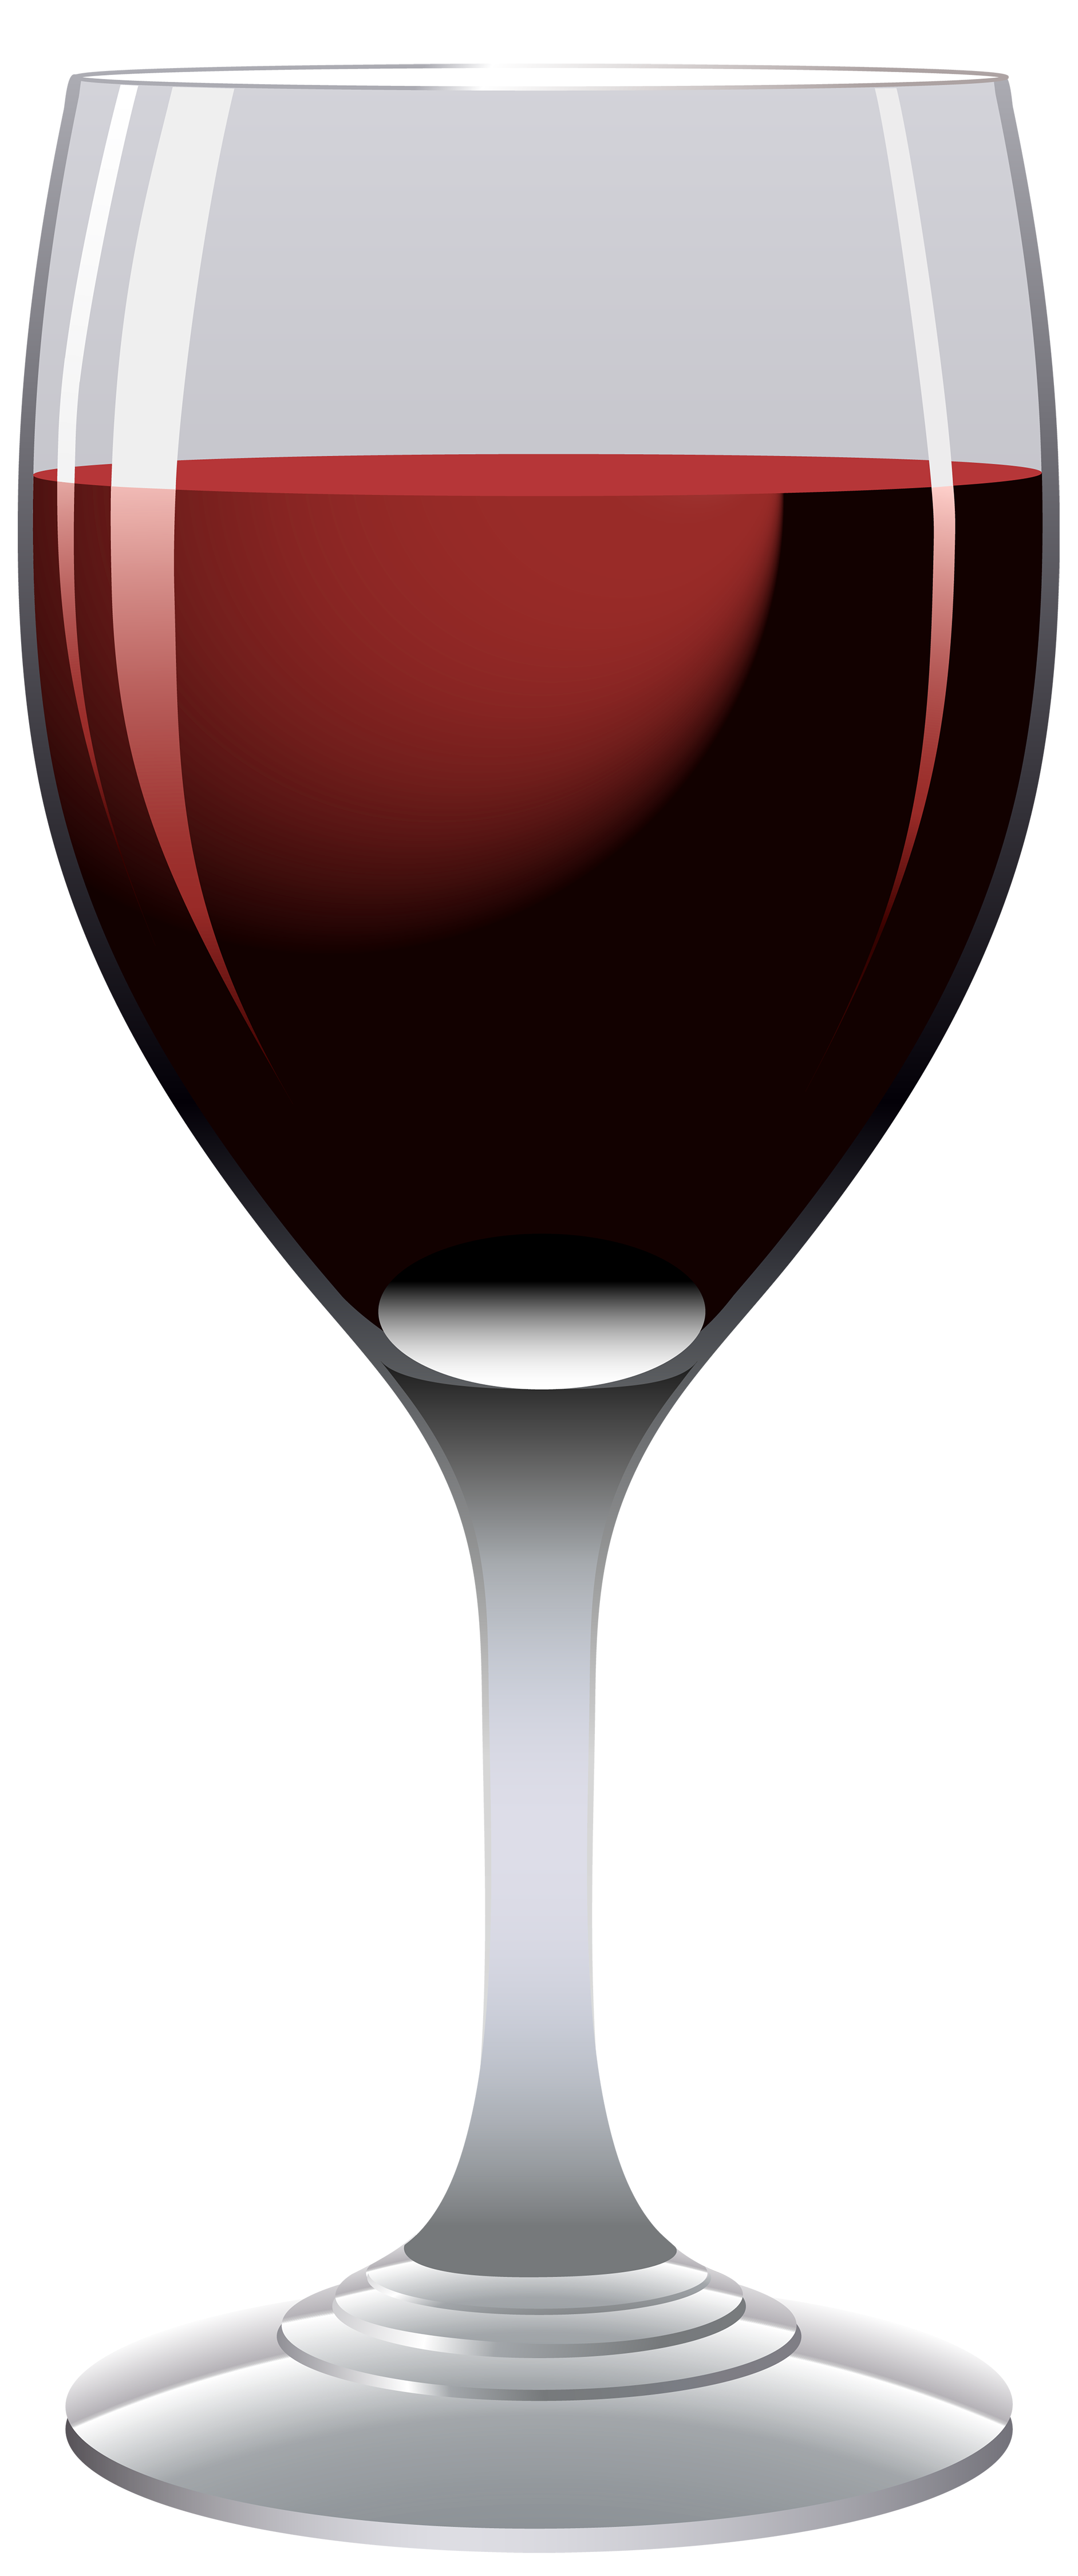 Red wine glass png. Glasses clipart line art